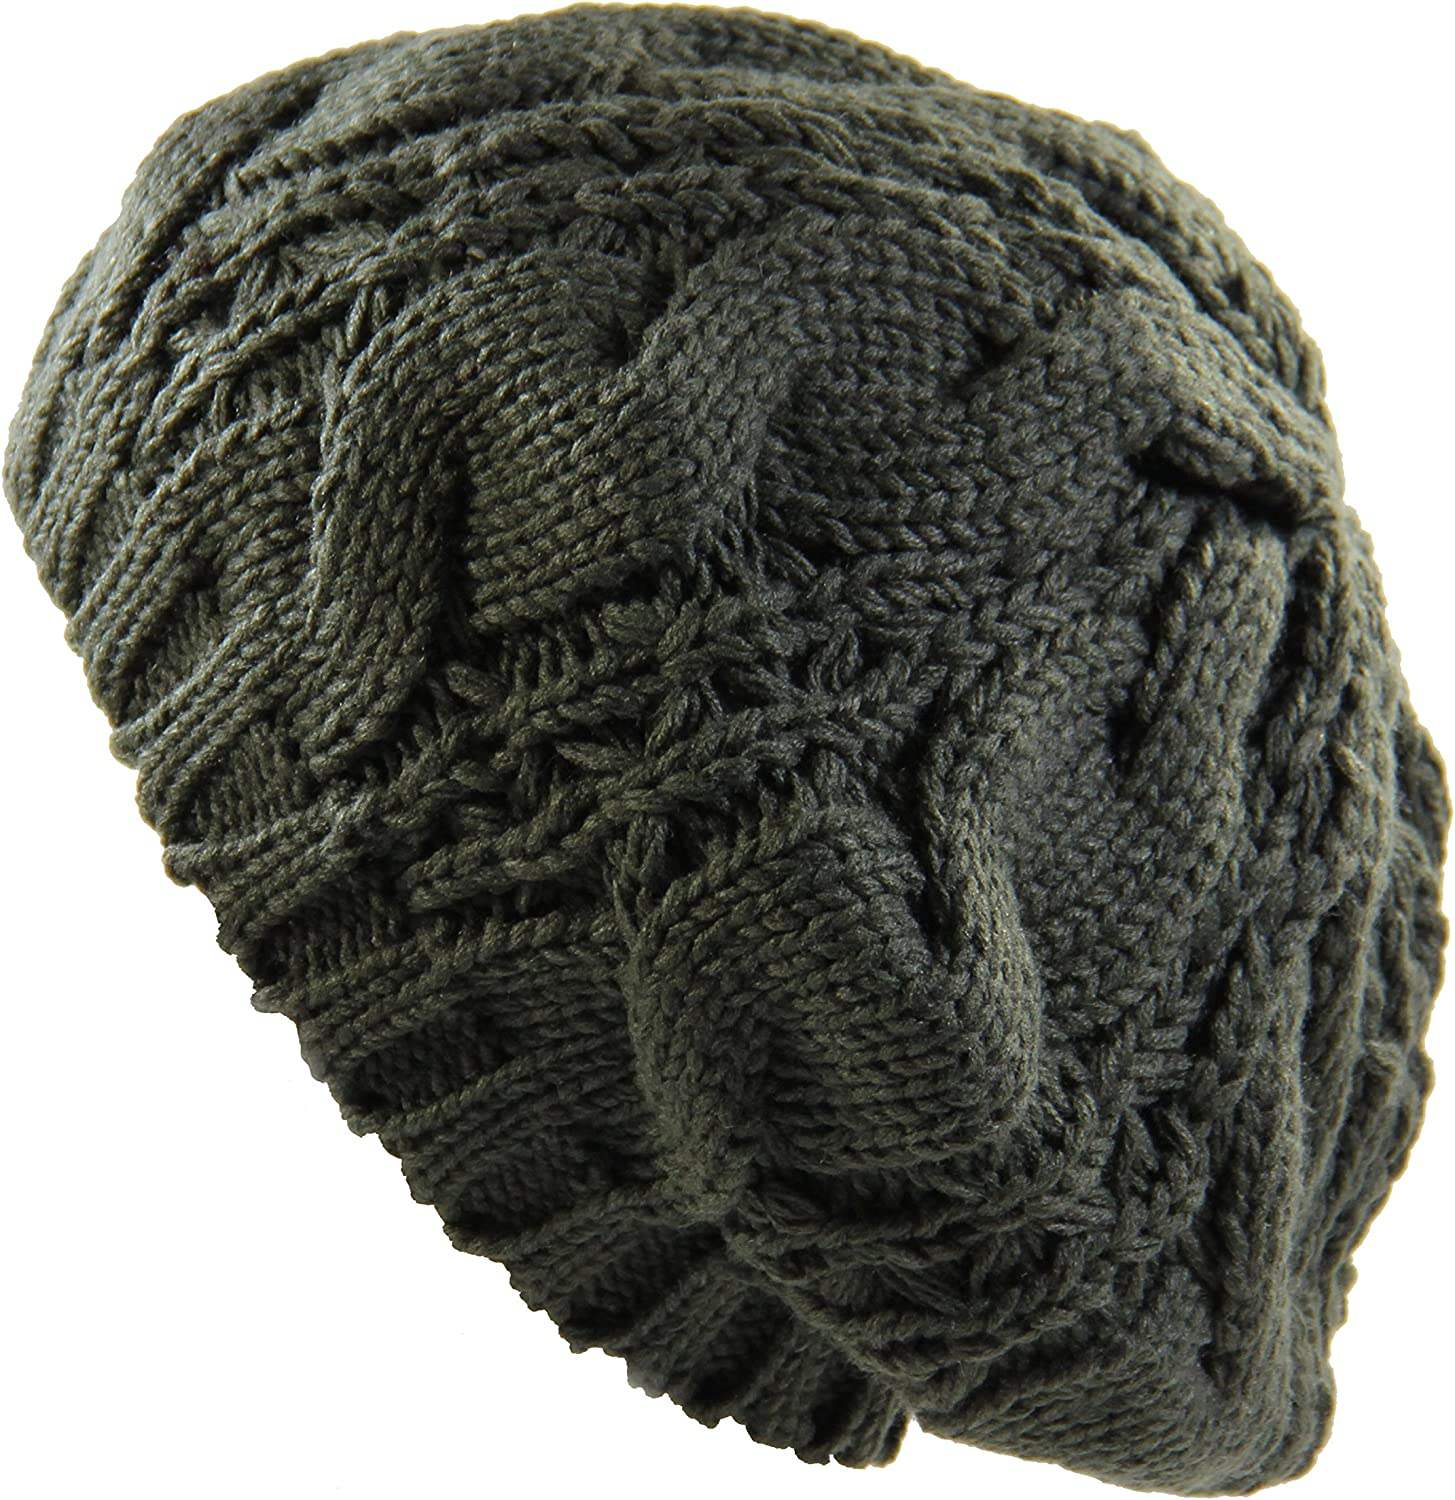 RW Warm Chuncky Knit Over Size Cable Beanie Beret(More Colors)